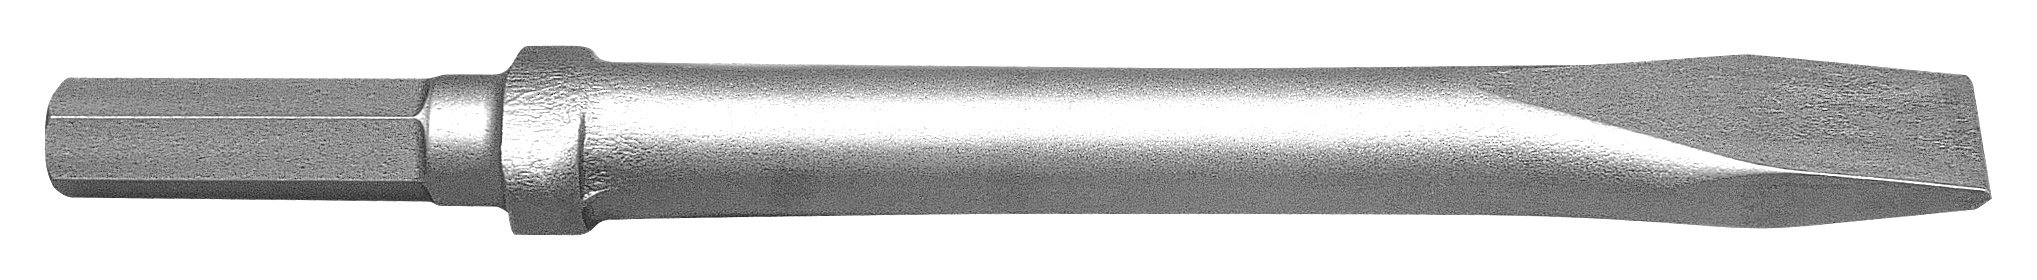 Champion Chisel, 12-Inch Long .580 Hex Shank Oval Collar Chipping Hammer Narrow, Flat Chisel